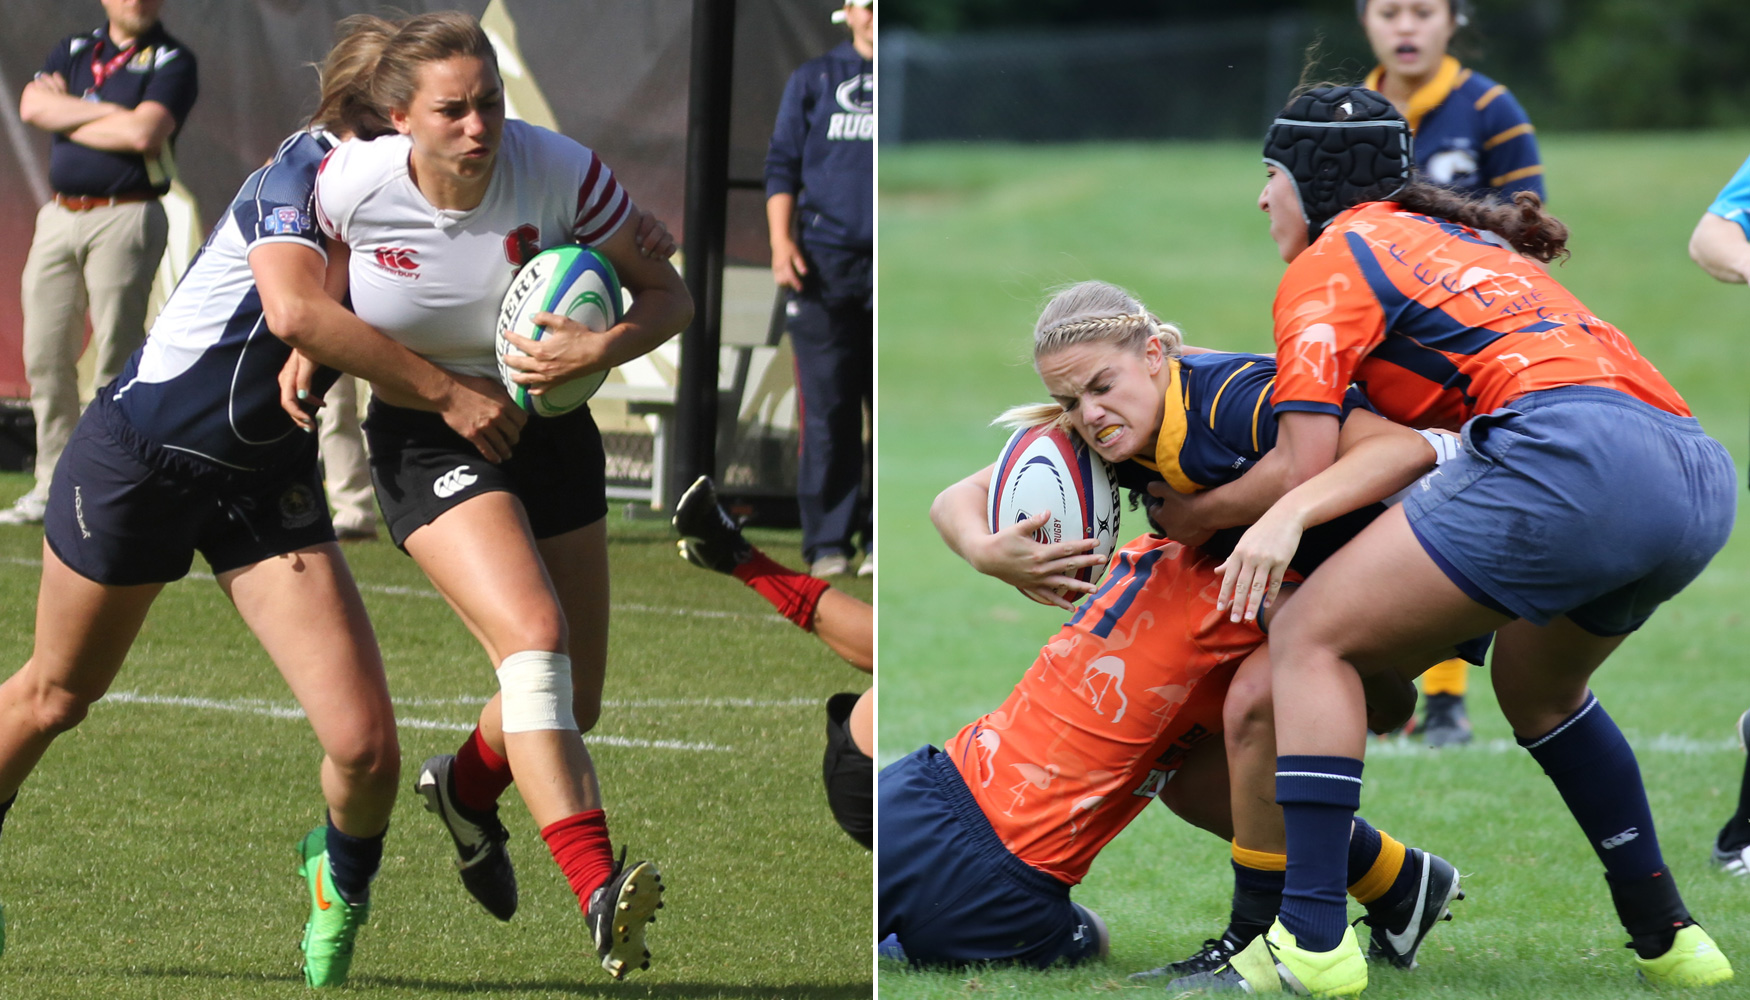 USA College 7s: Competitive Women's DI bracket at College 7s leaves little room for error